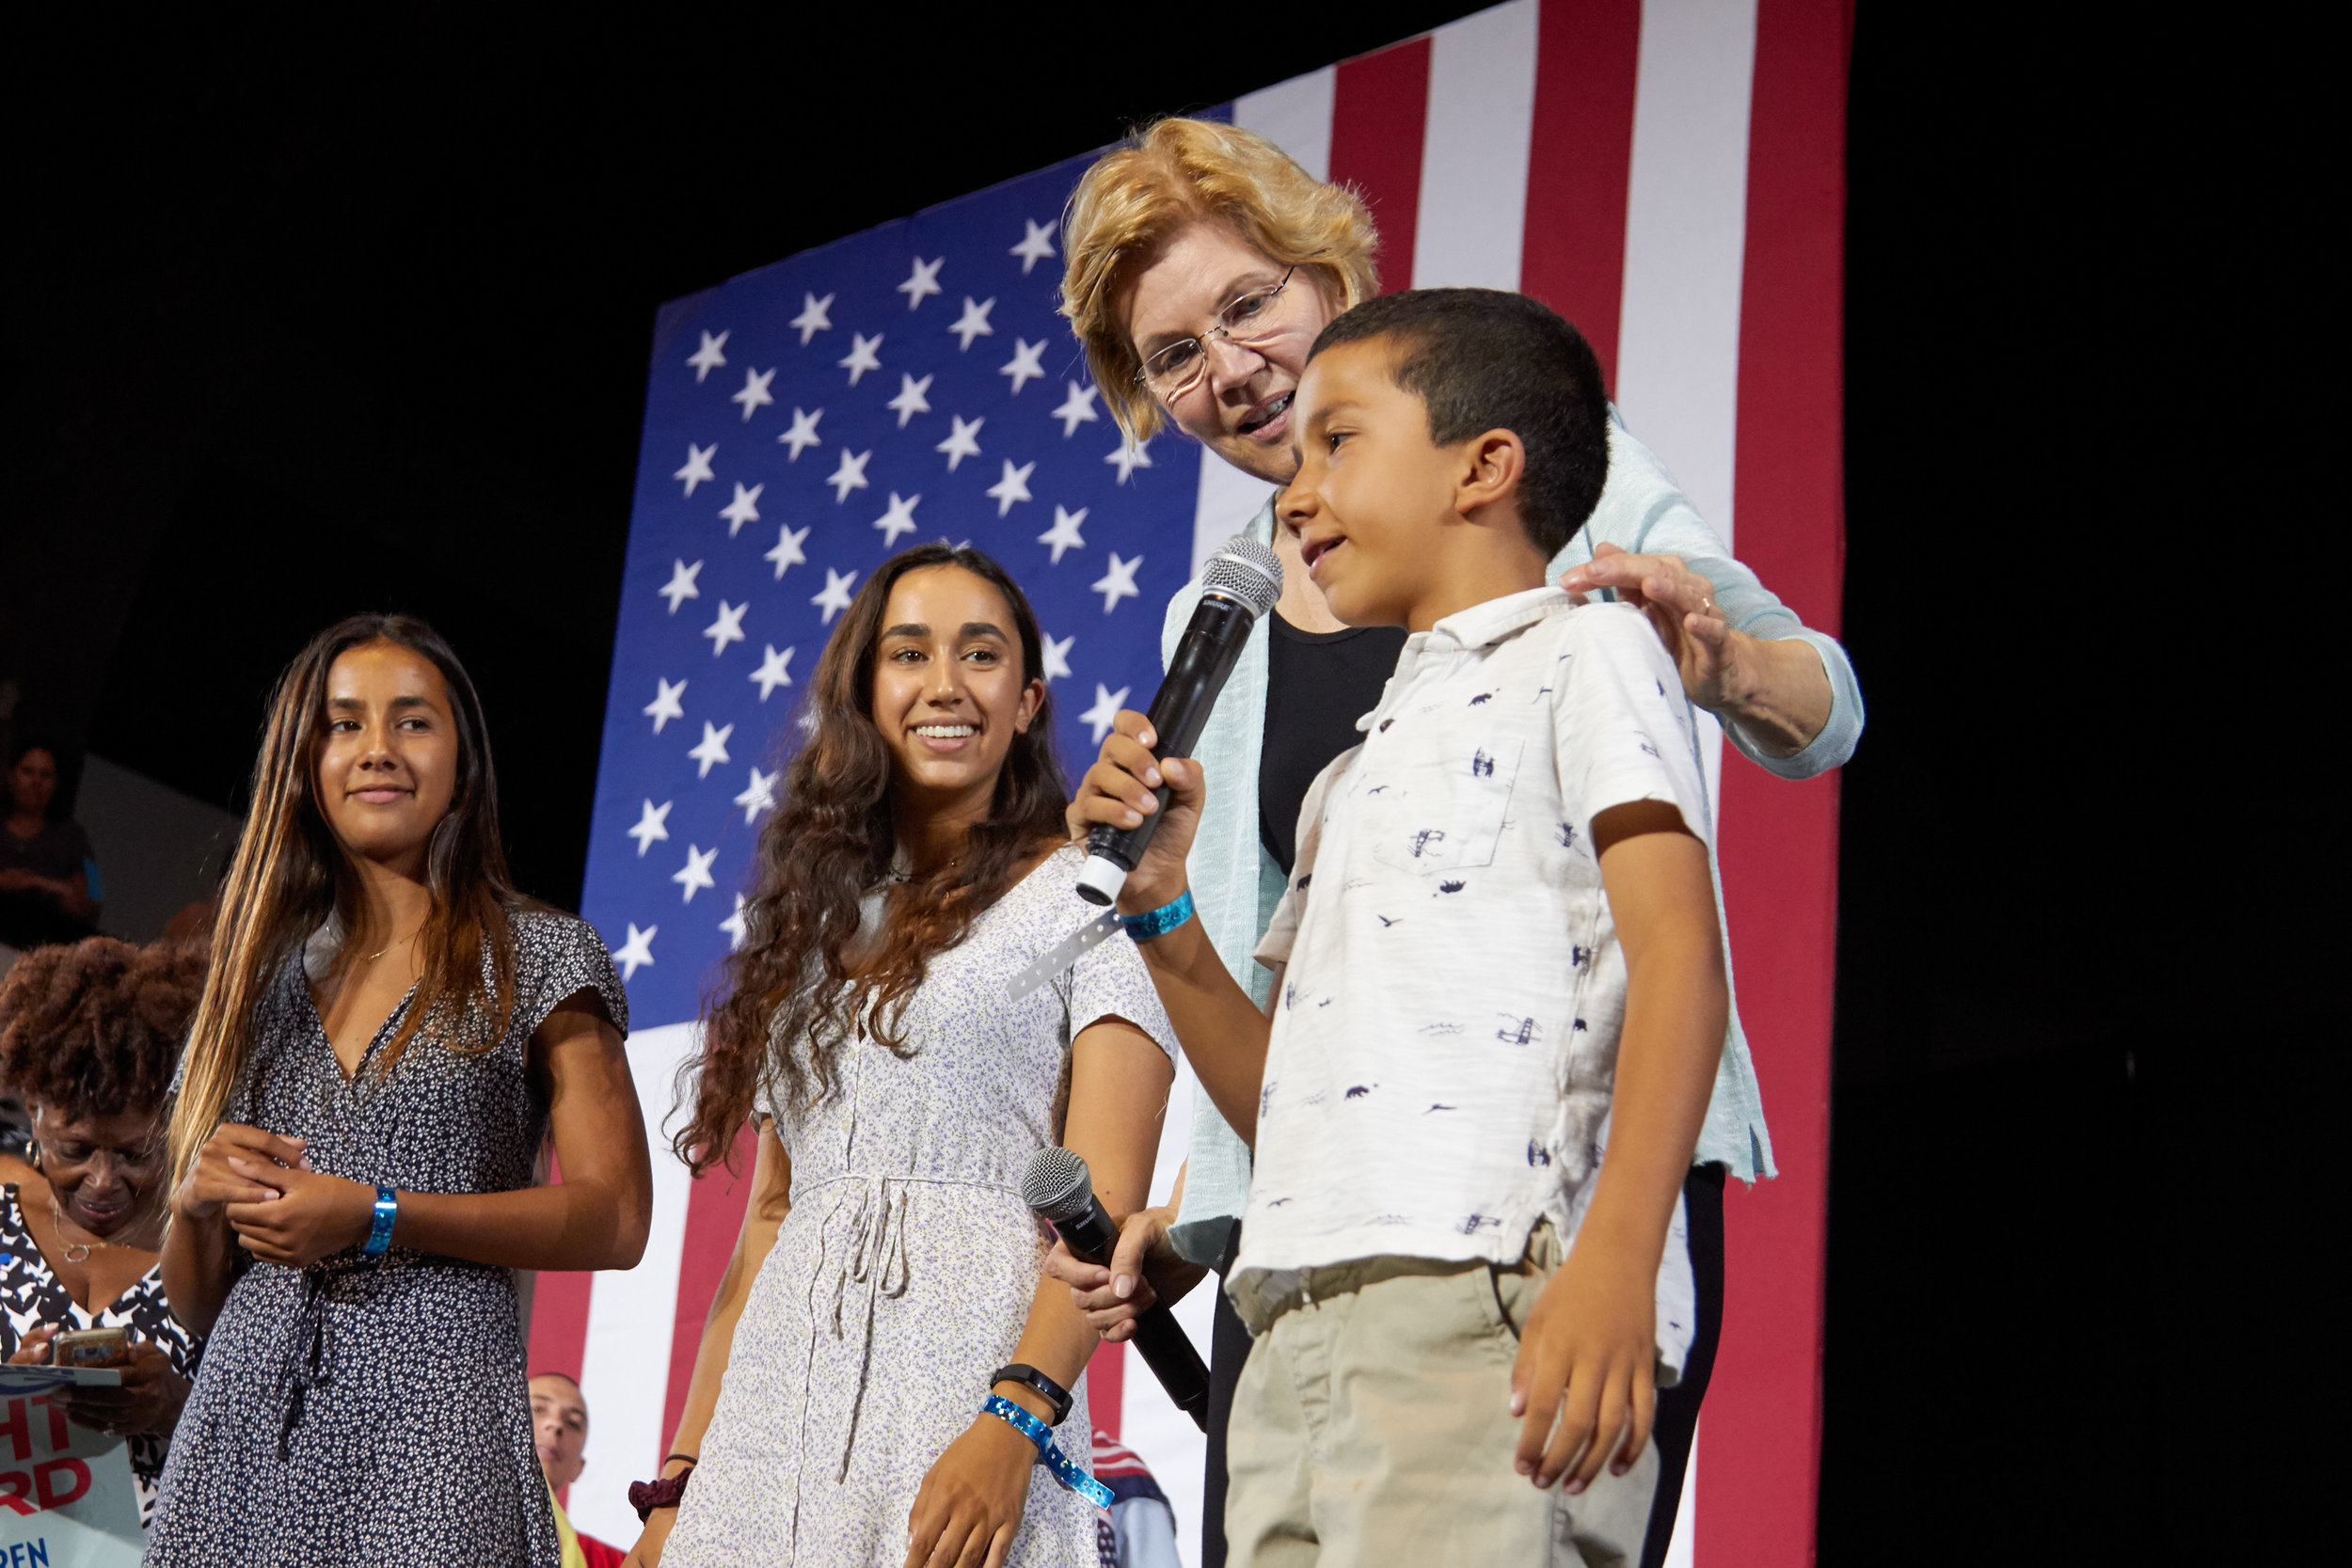 Massachusetts senator Elizabeth Warren shares the stage with children at the end of her Town Hall event for her presidential campaign, at the Shrine Expo Hall, Los Angeles, California, on August 21st 2019. (Marco Pallotti/The Corsair)